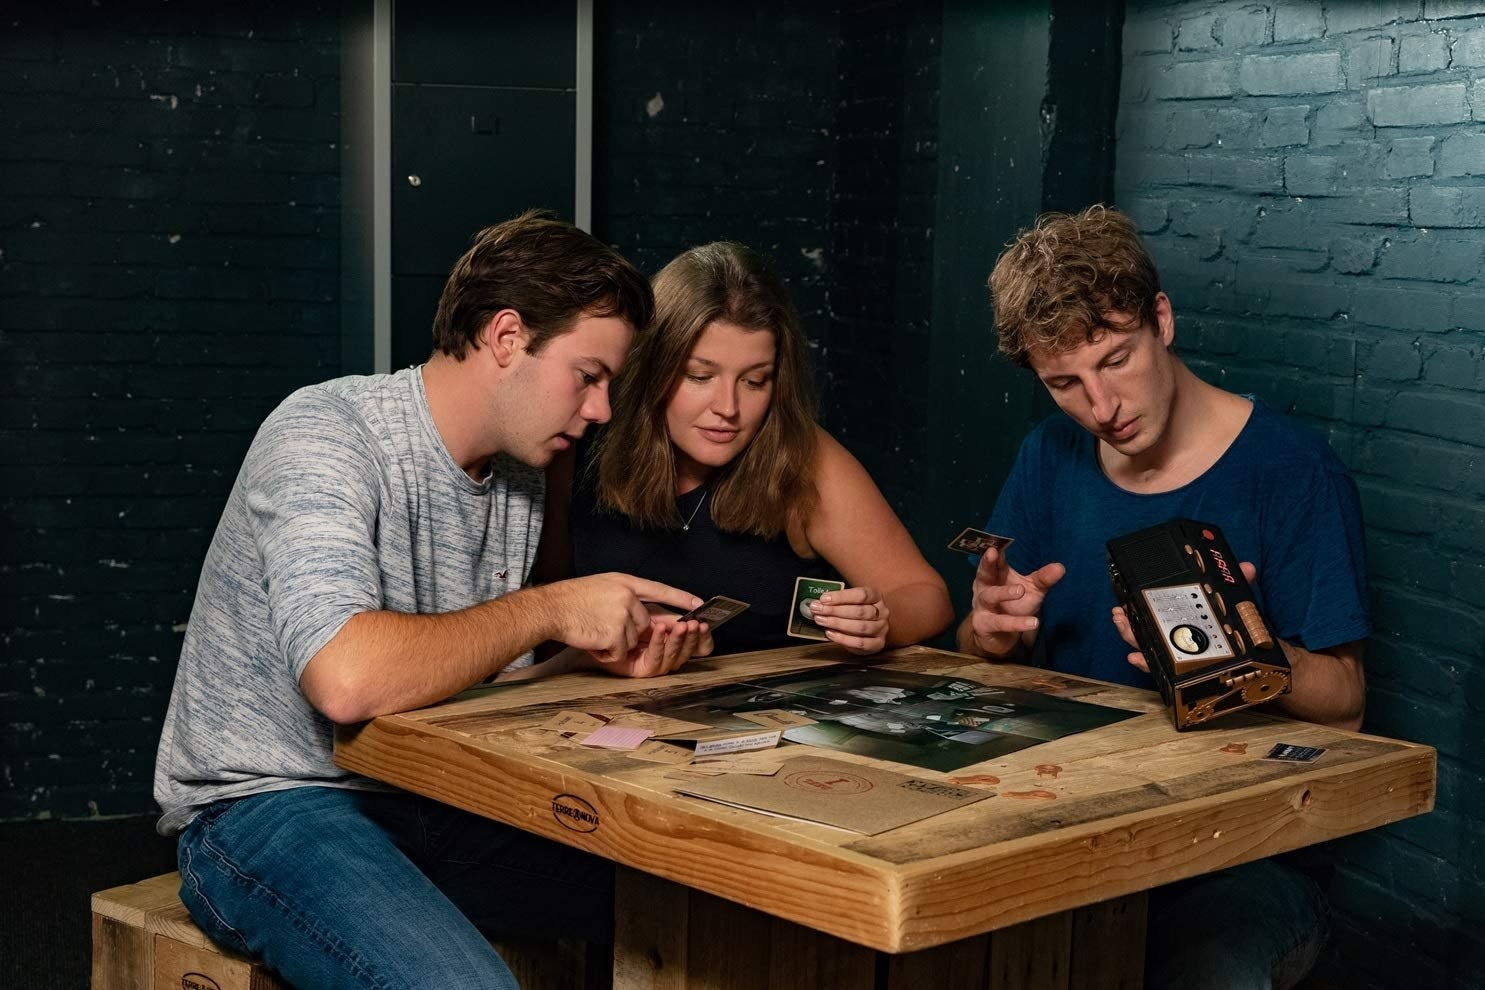 three people sitting around a table trying to solve the escape room puzzle